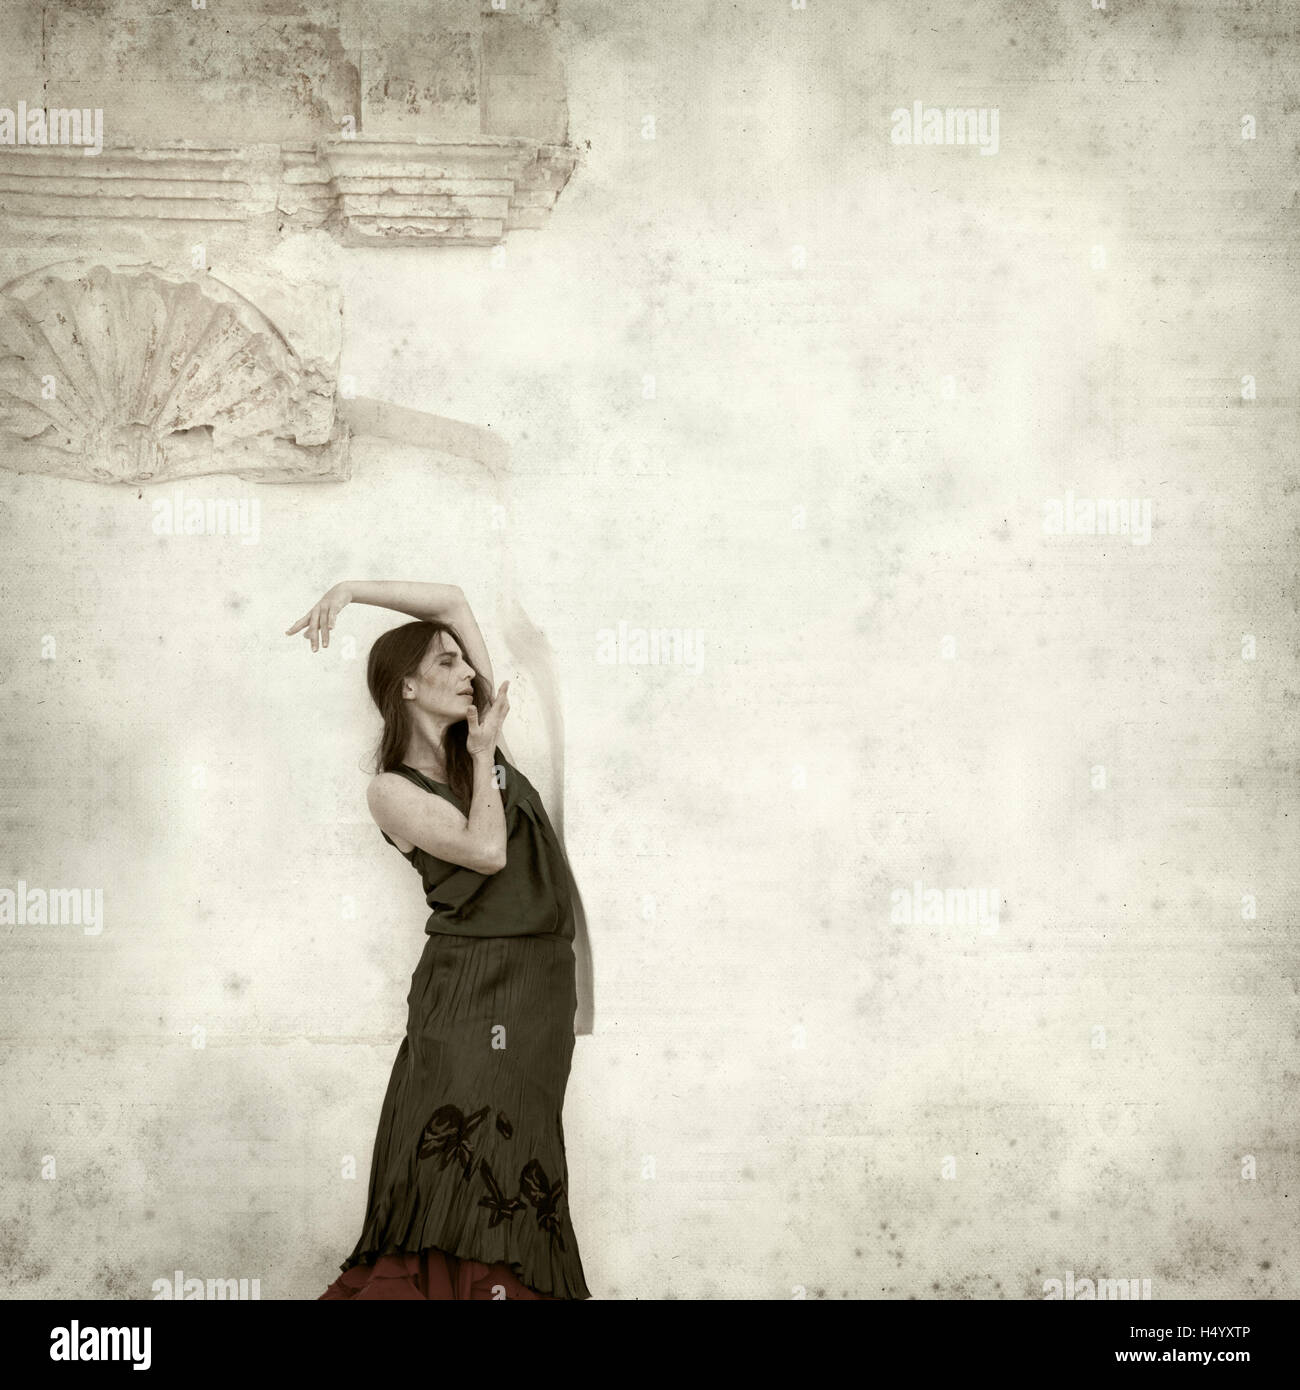 textured old paper background with flamenco dancer in ruins of old church - Stock Image